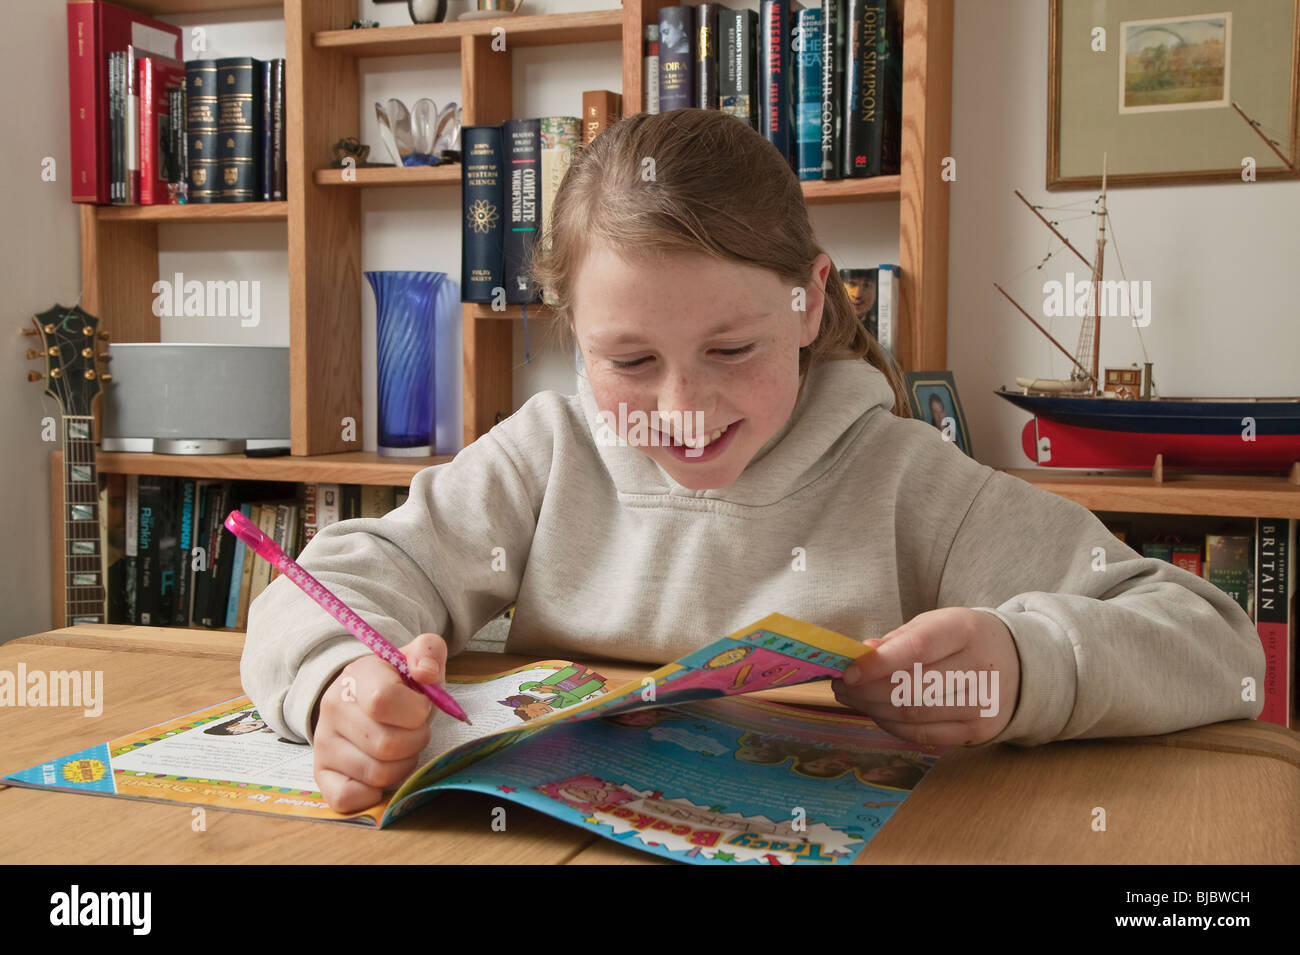 Ten year old girl with comic in front of bookshelves. - Stock Image